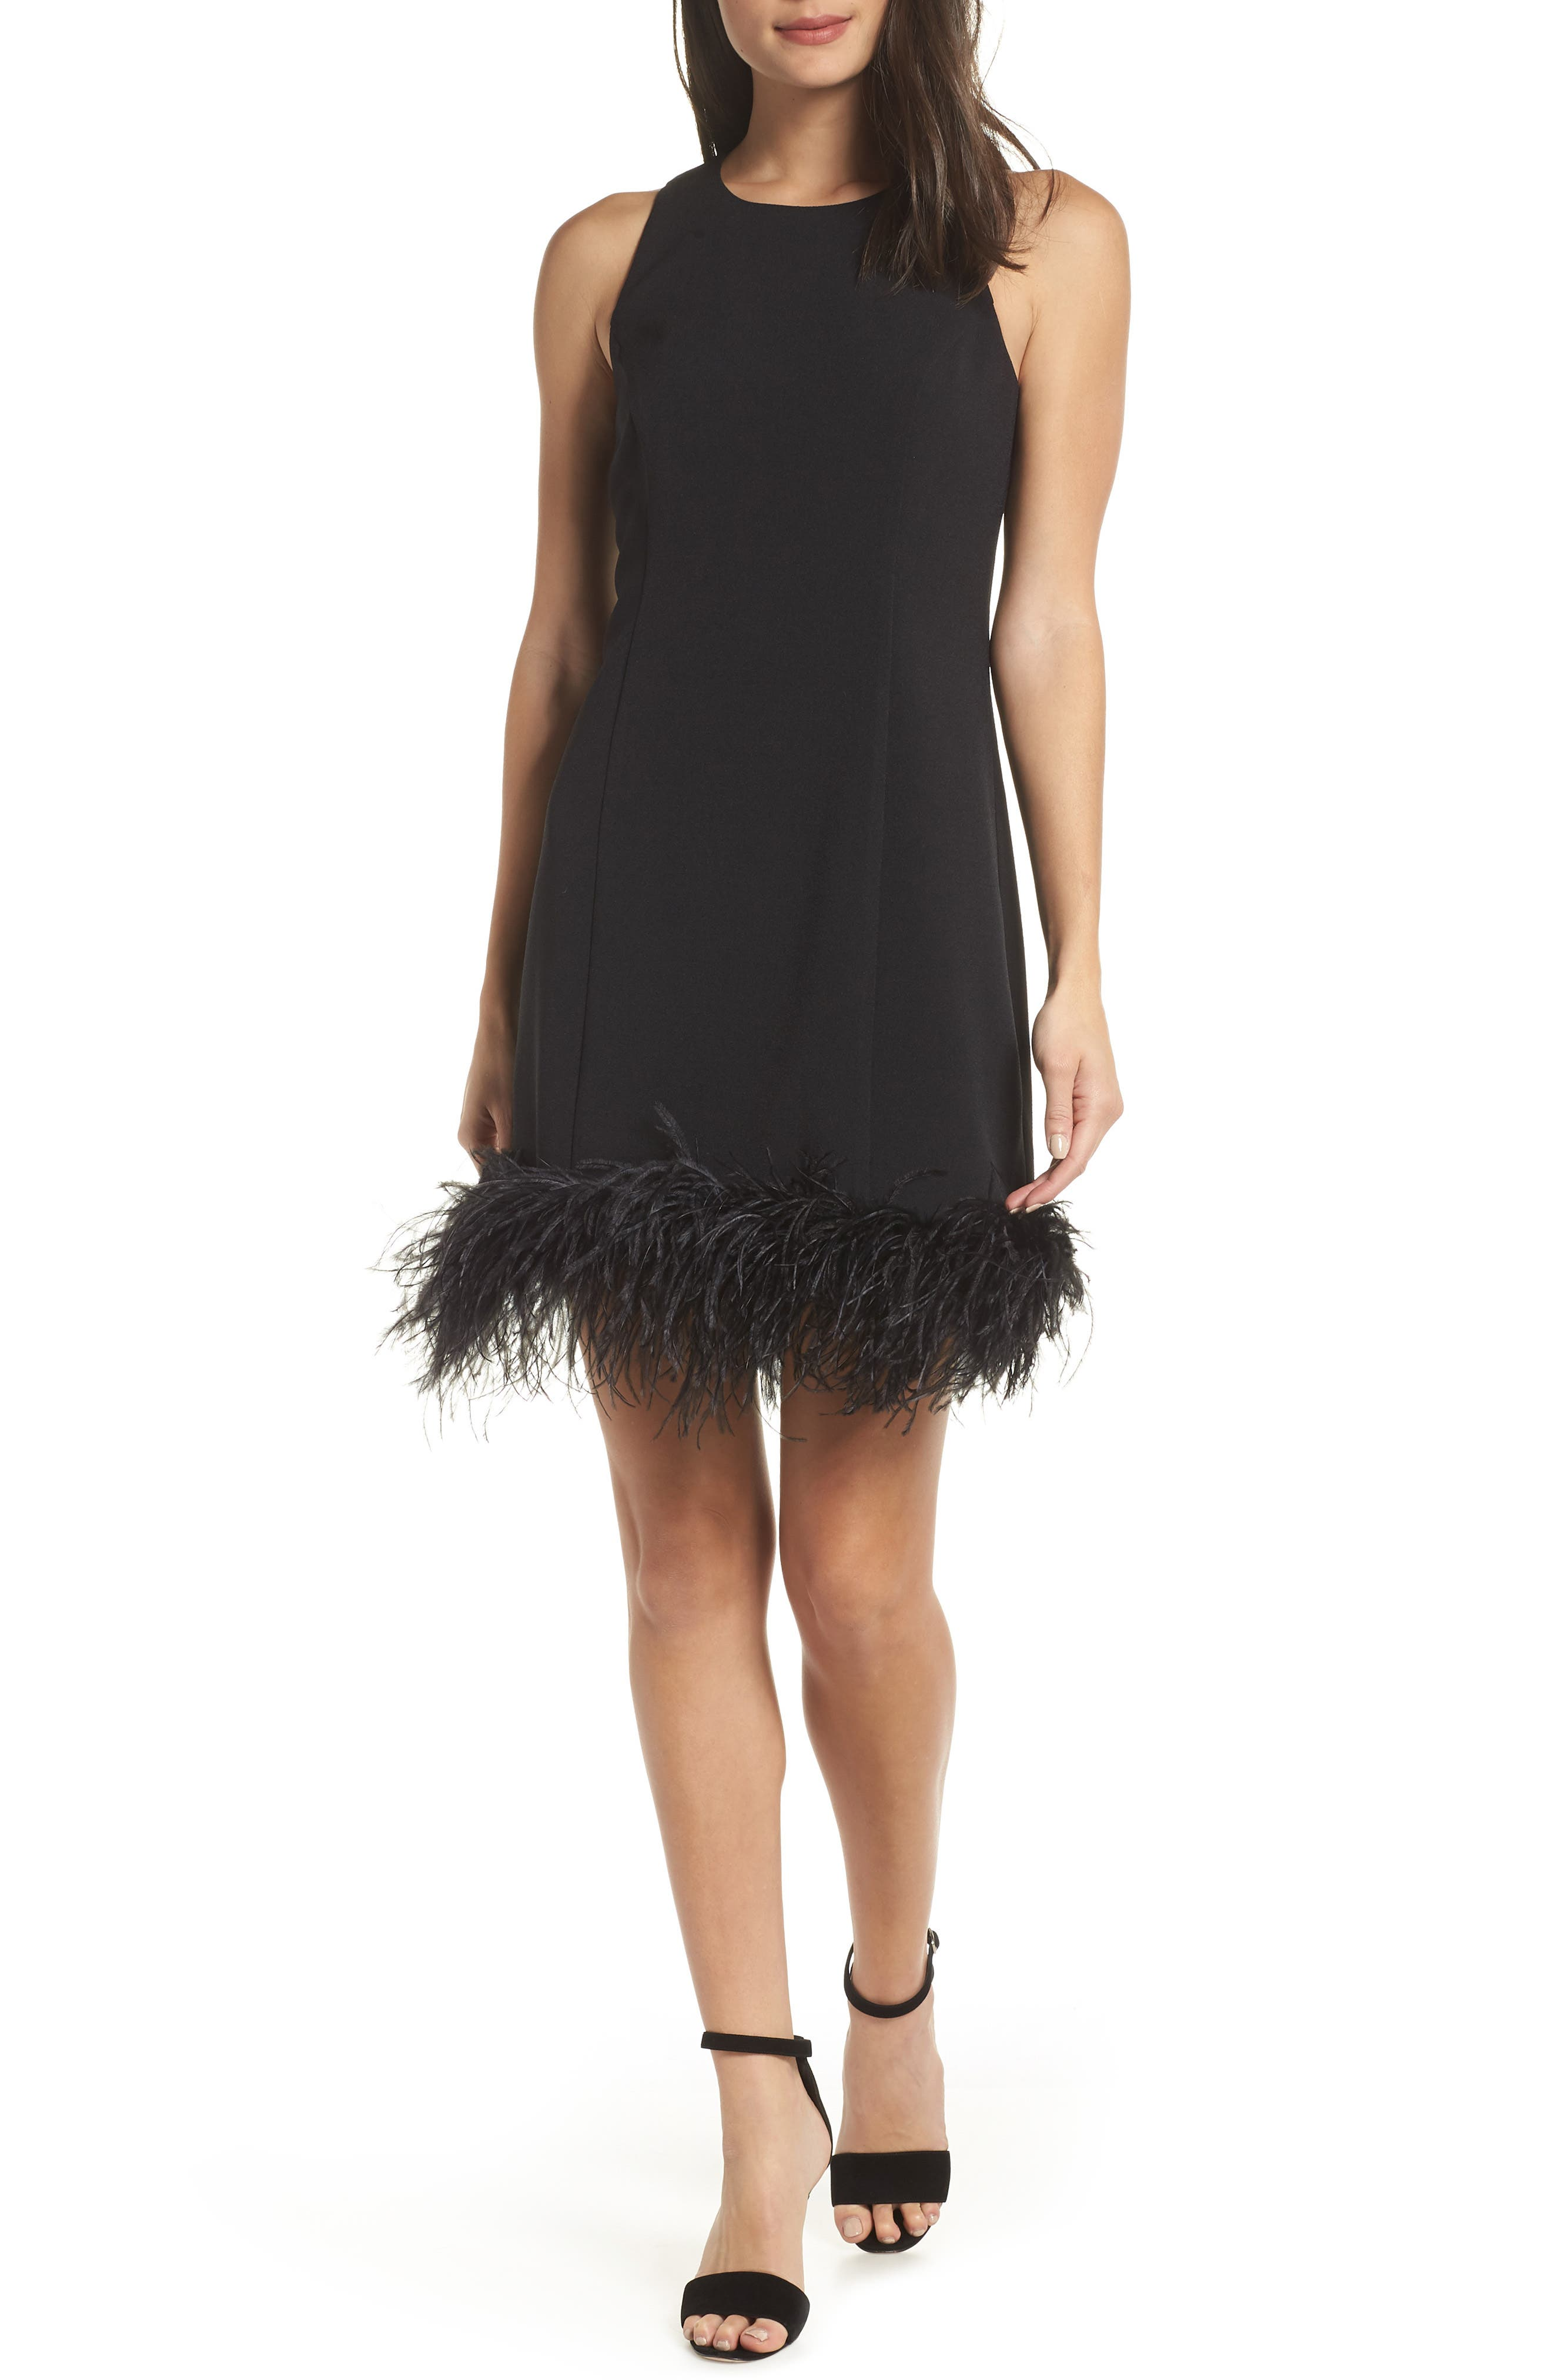 Vintage Cocktail Dresses, Party Dresses Womens Chelsea28 Feather Hem Sheath Dress $127.20 AT vintagedancer.com